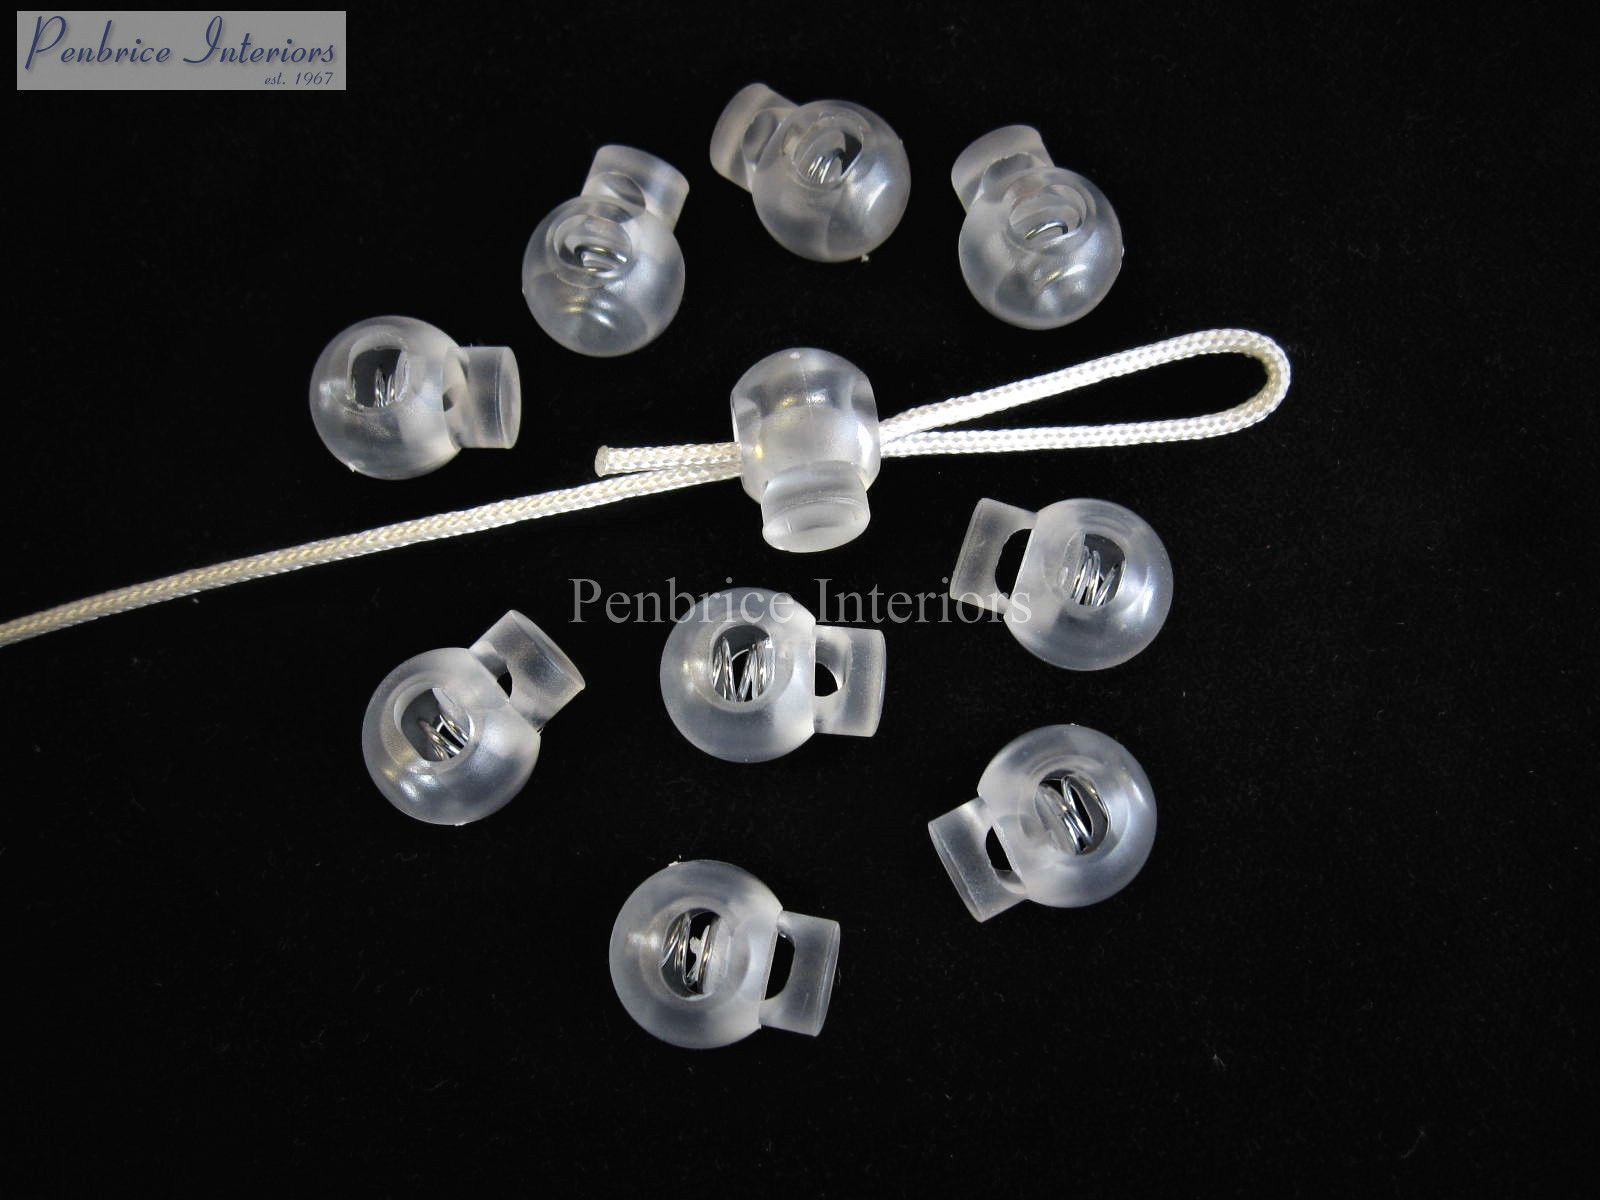 10 Orbs Roman Blind Spring Loaded Cord Stoppers String